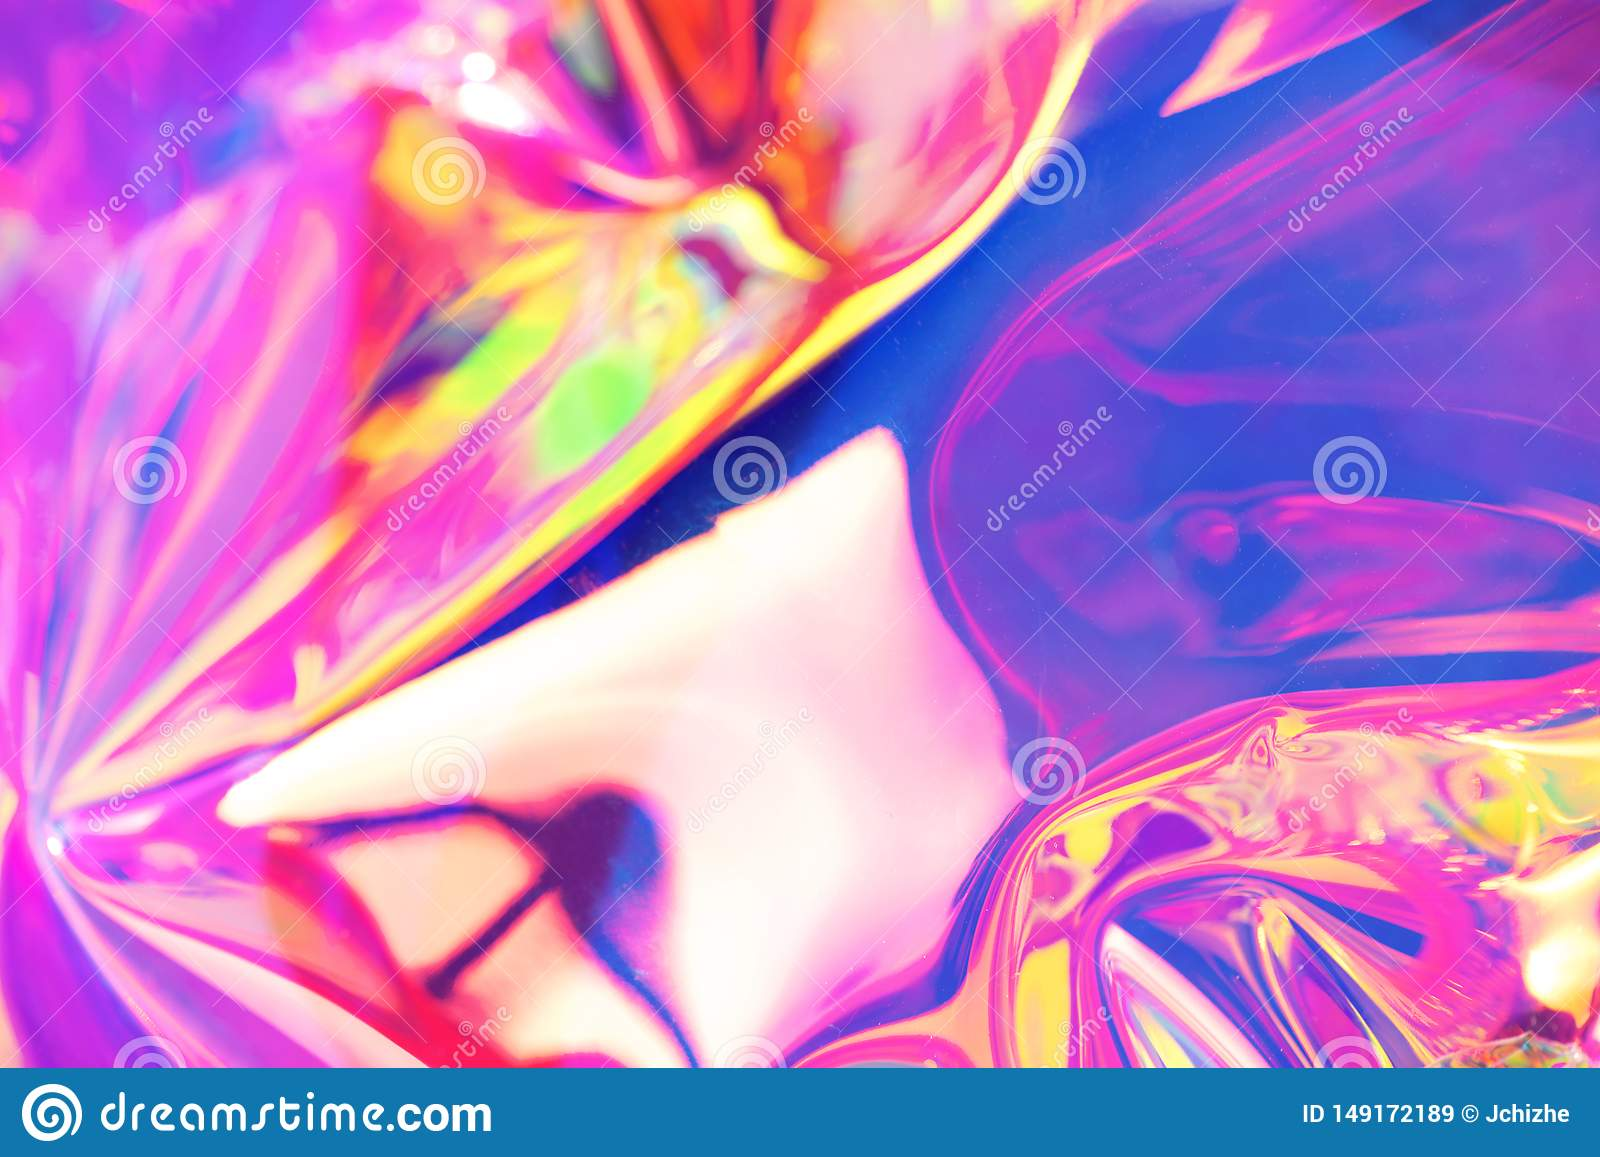 Neon Holographic Background Wallpaper Hologram With Copy Space Wrinkled Abstract Texture With Multiple Colors Stock Image Image Of Iridescent Fluid 149172189